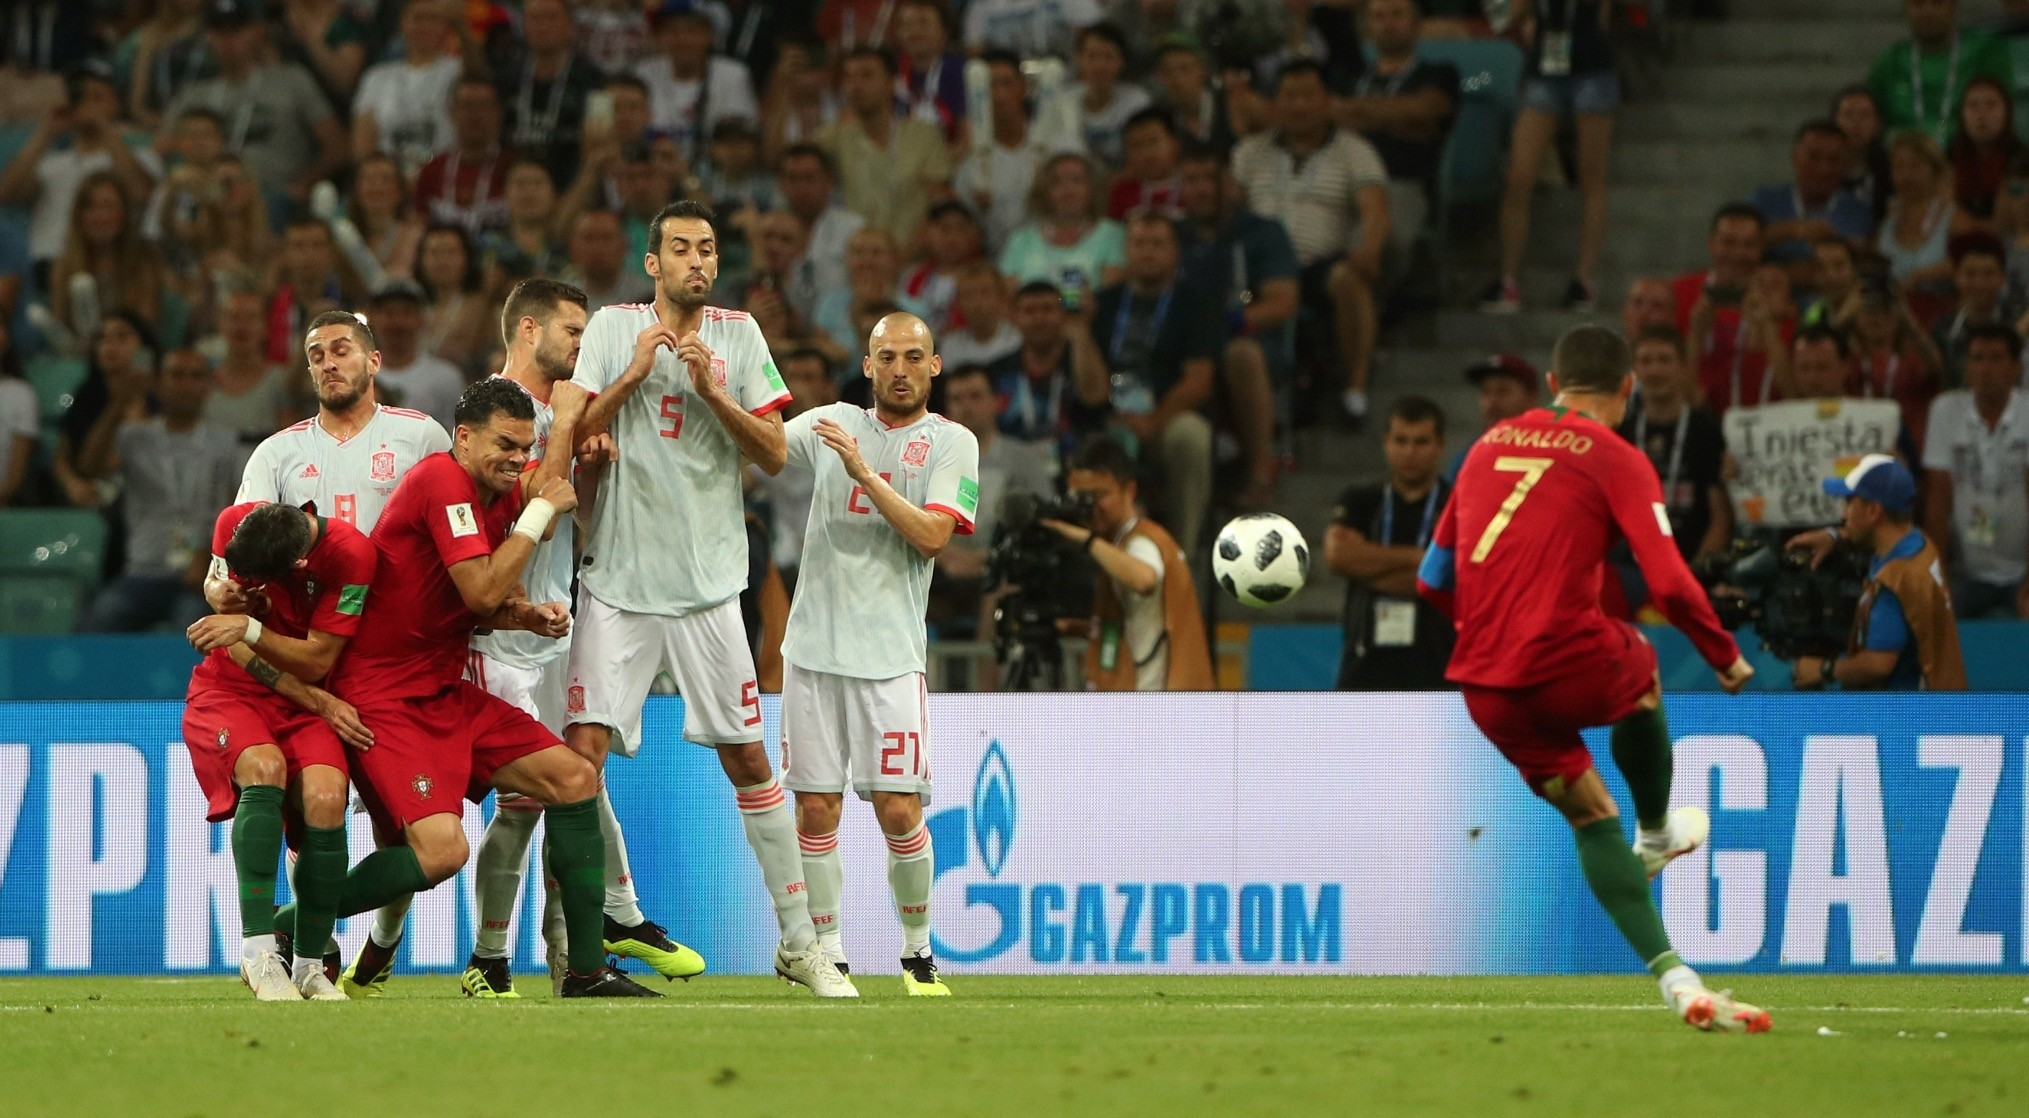 Portuguese star Ronaldo achieved his hat trick in the 3-3 draw with Spain, only with the help of a penalty and free-kick.